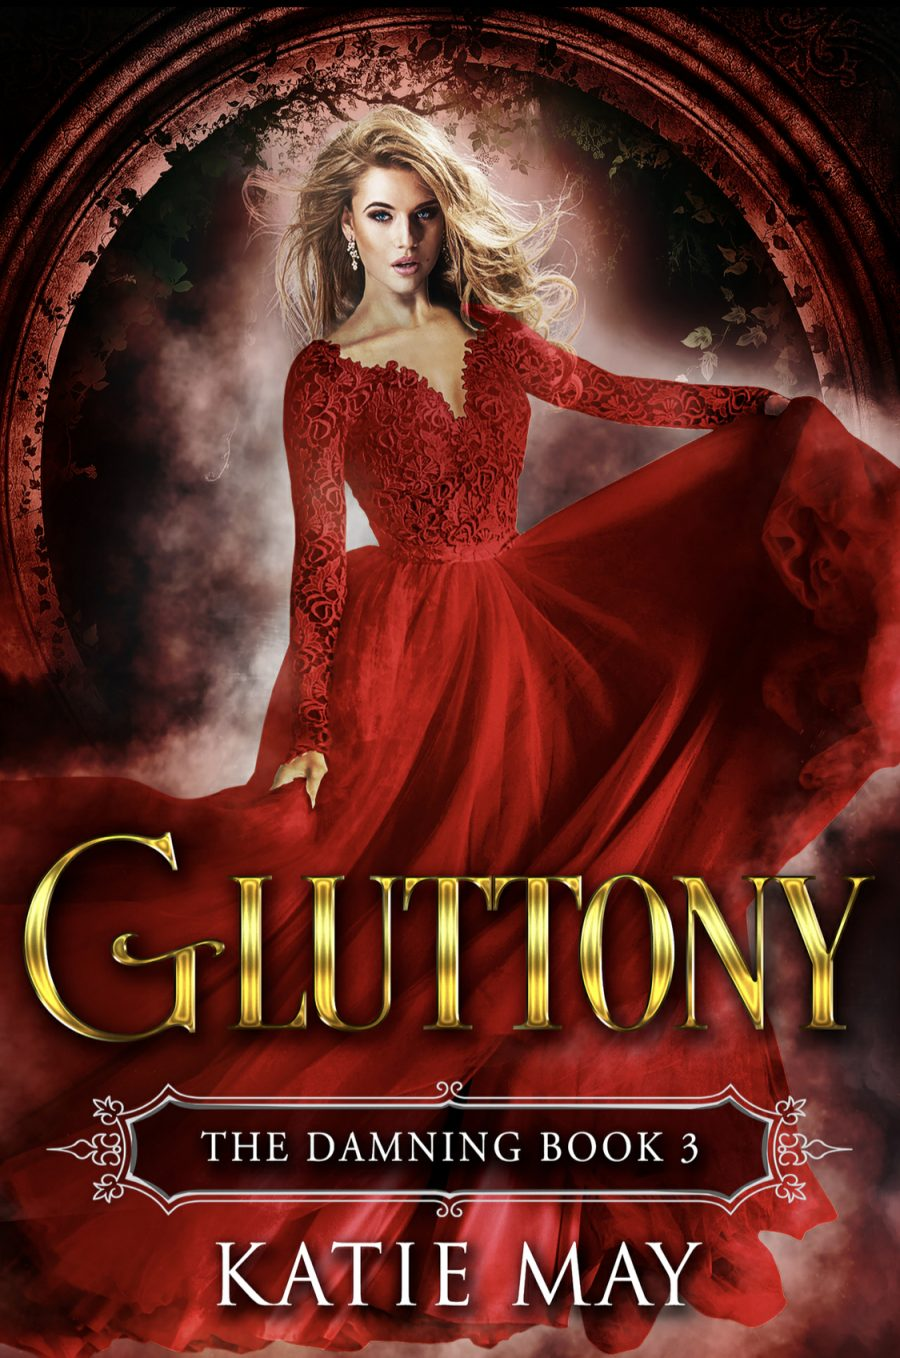 Gluttony (The Damning - Book 3) by Katie May - A Book Review #BookReview #Fantasy #SlowBurn #RH #MustRead #KindleUnlimited #KU